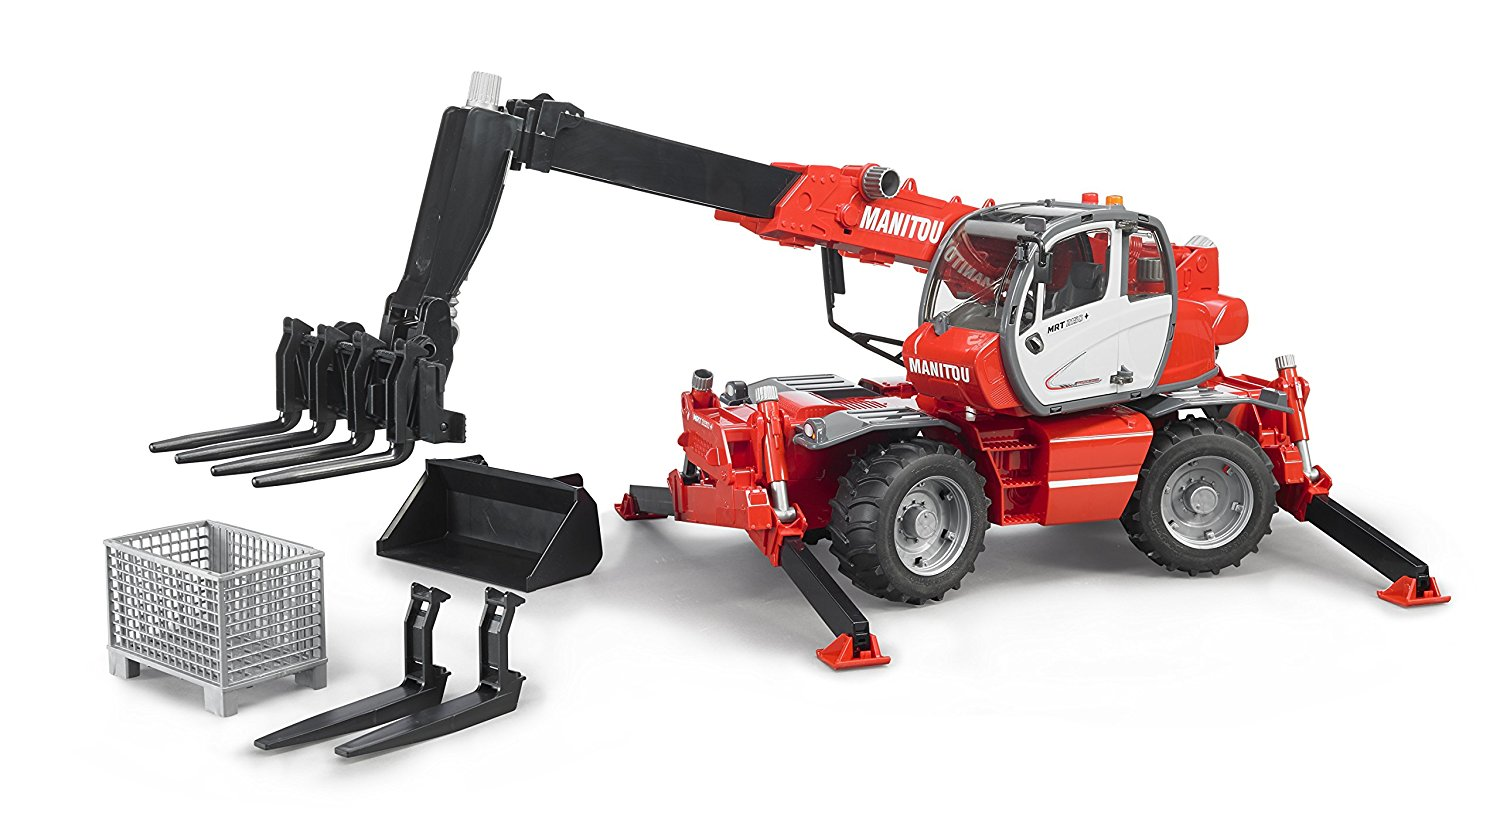 manitou mrt 2150 telehandler with accessories set